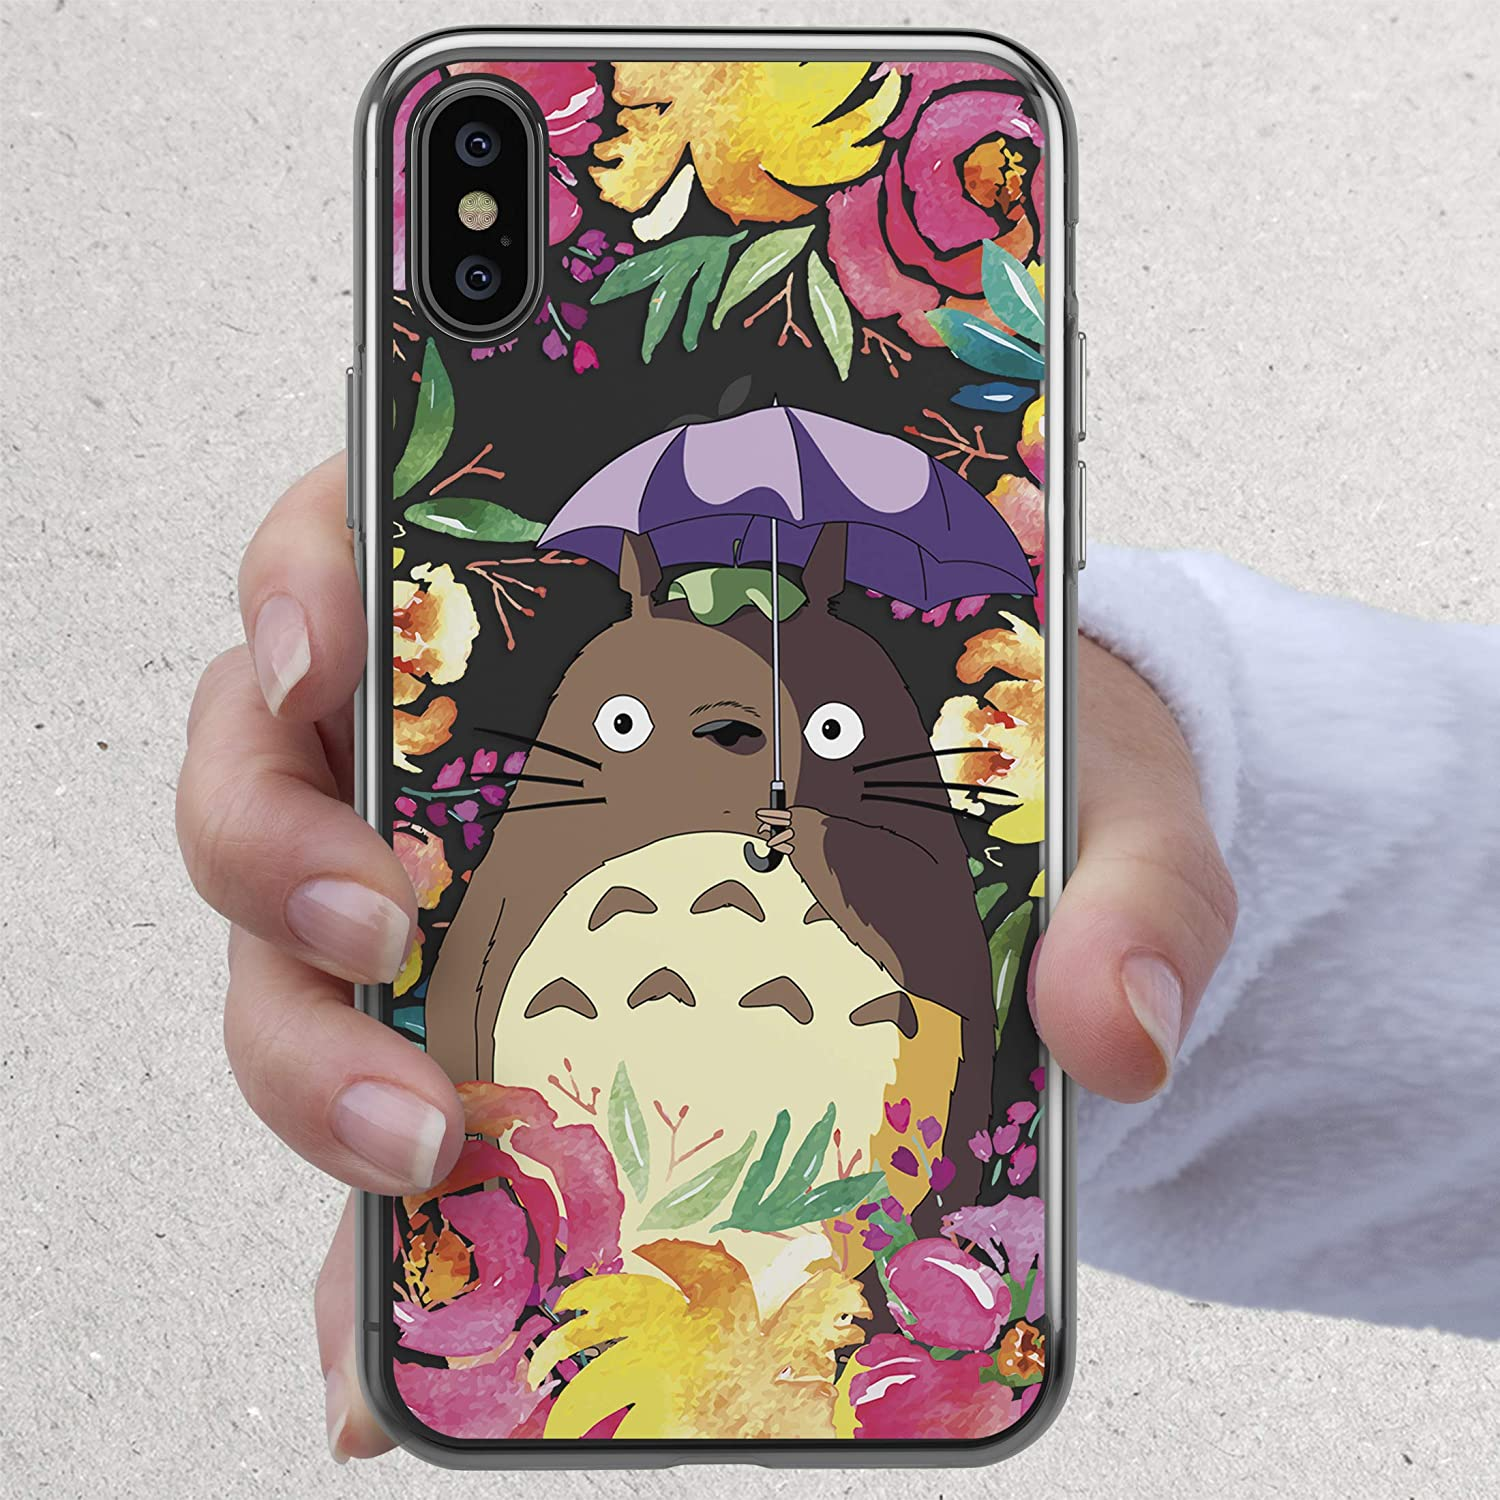 buy online d163d 10951 Amazon.com: My Neighbor Totoro Phone Case Cute Floral Pink Flowers ...